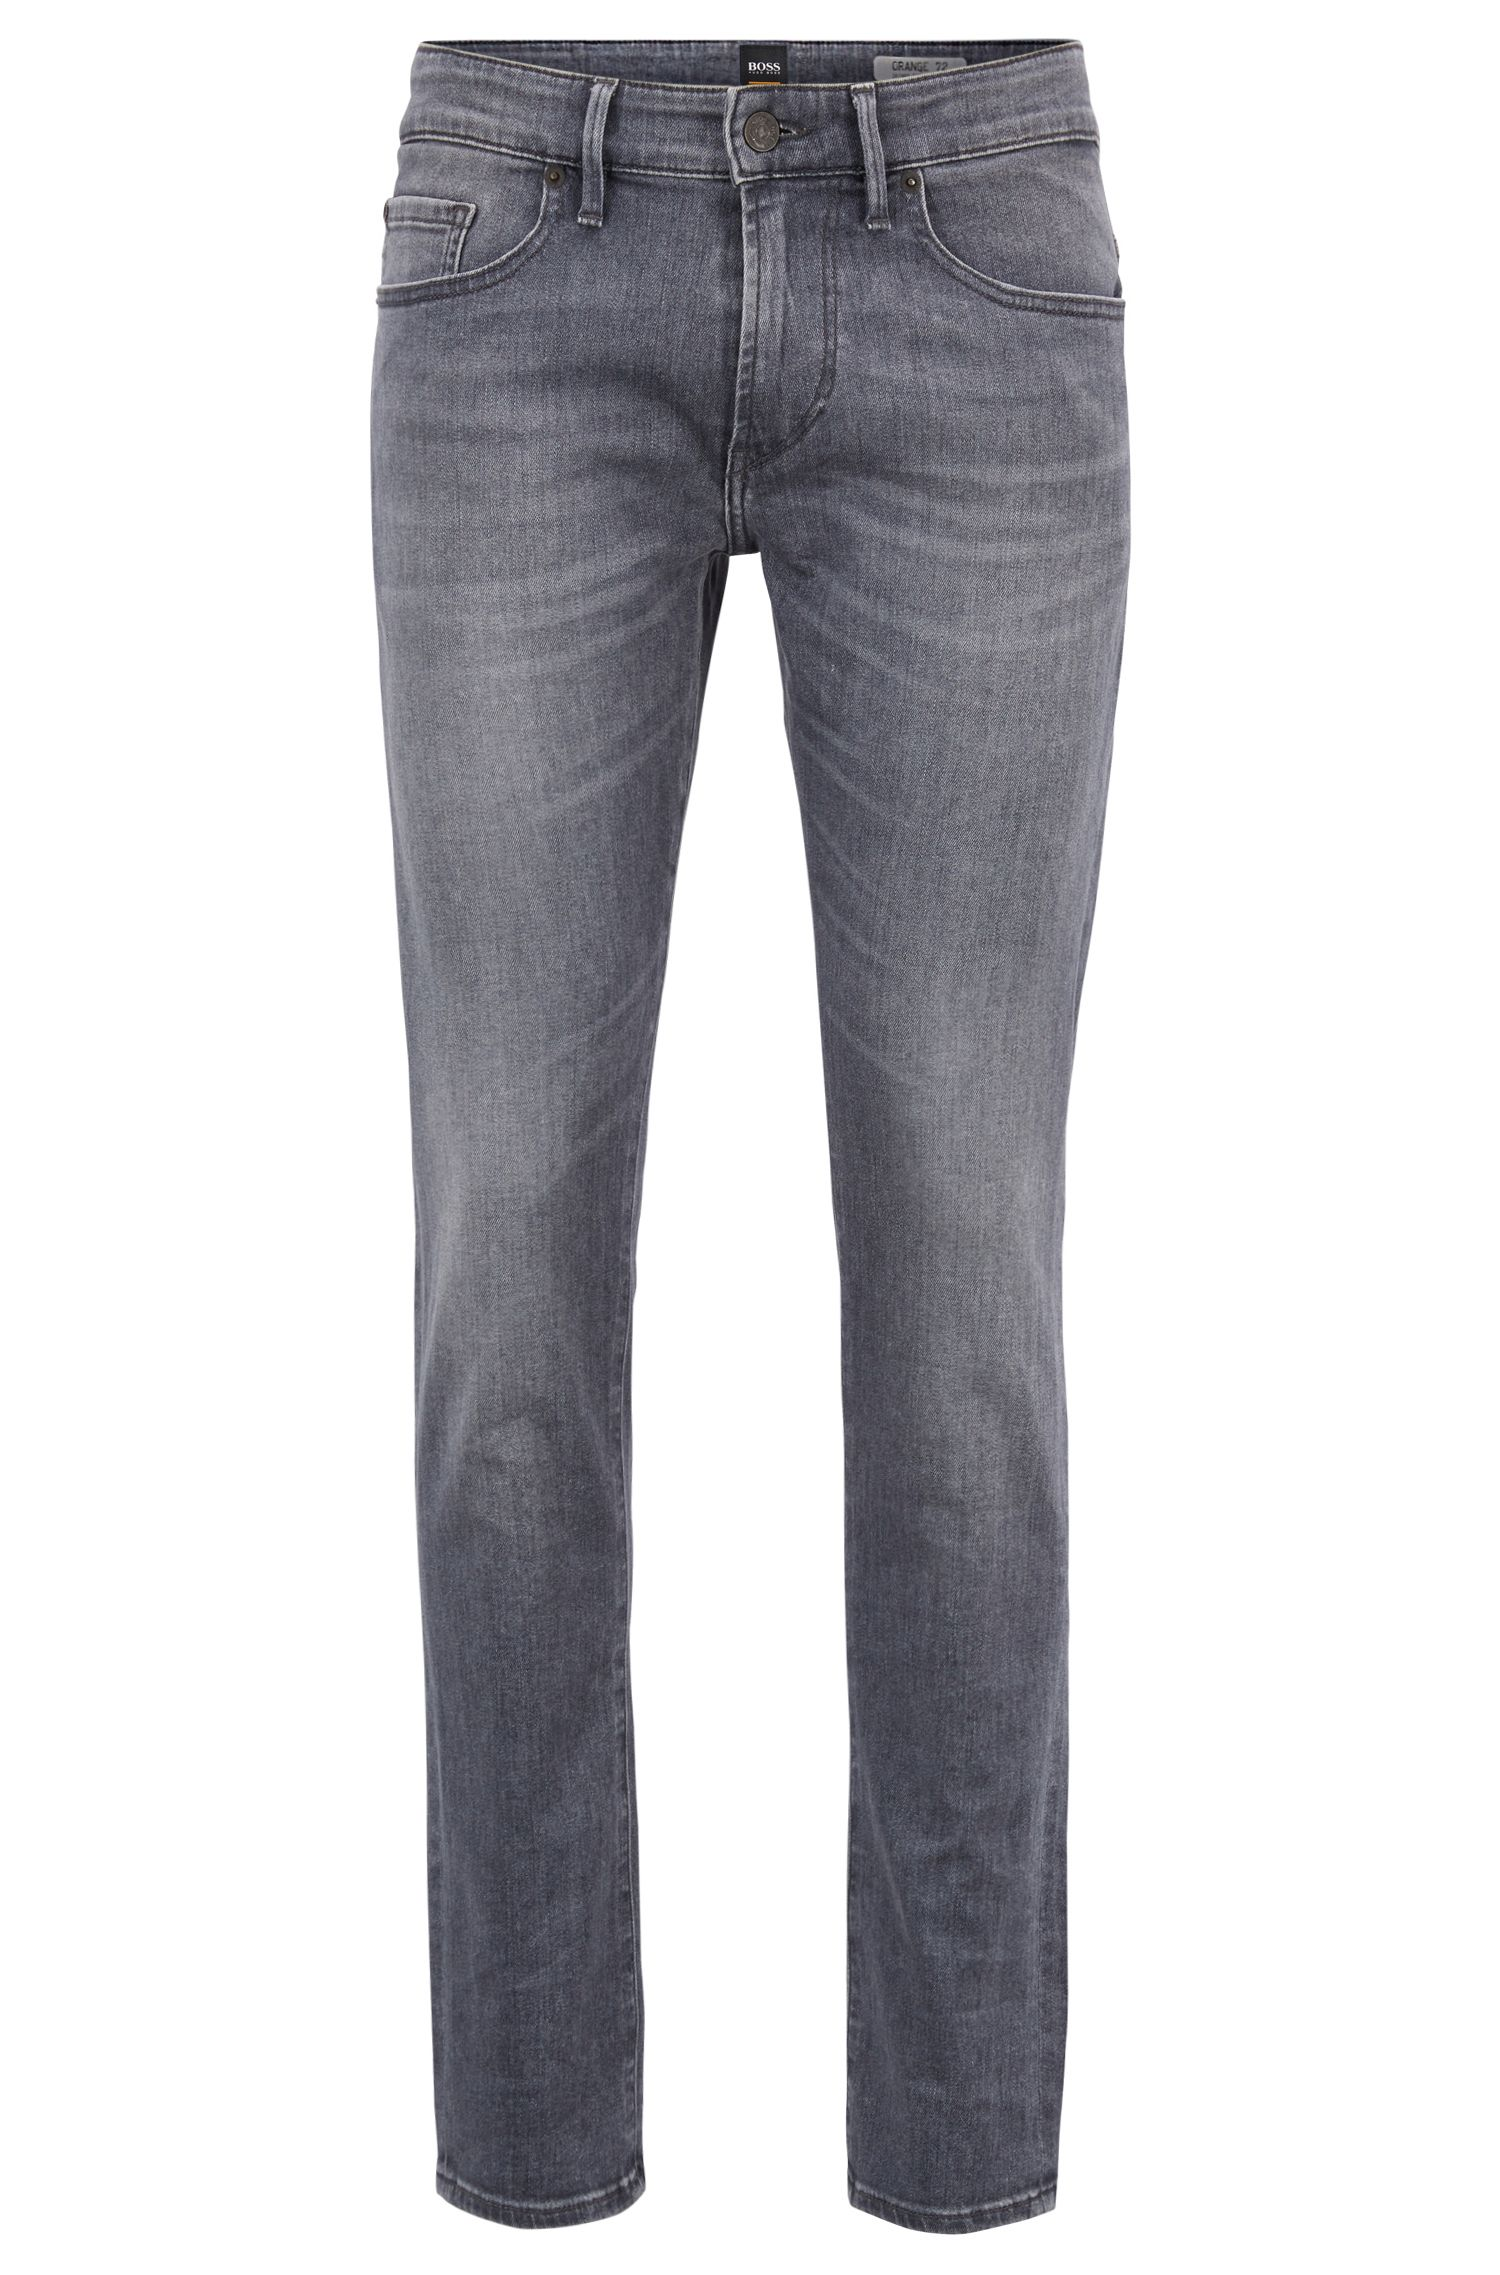 Skinny-fit grey jeans in stretch denim